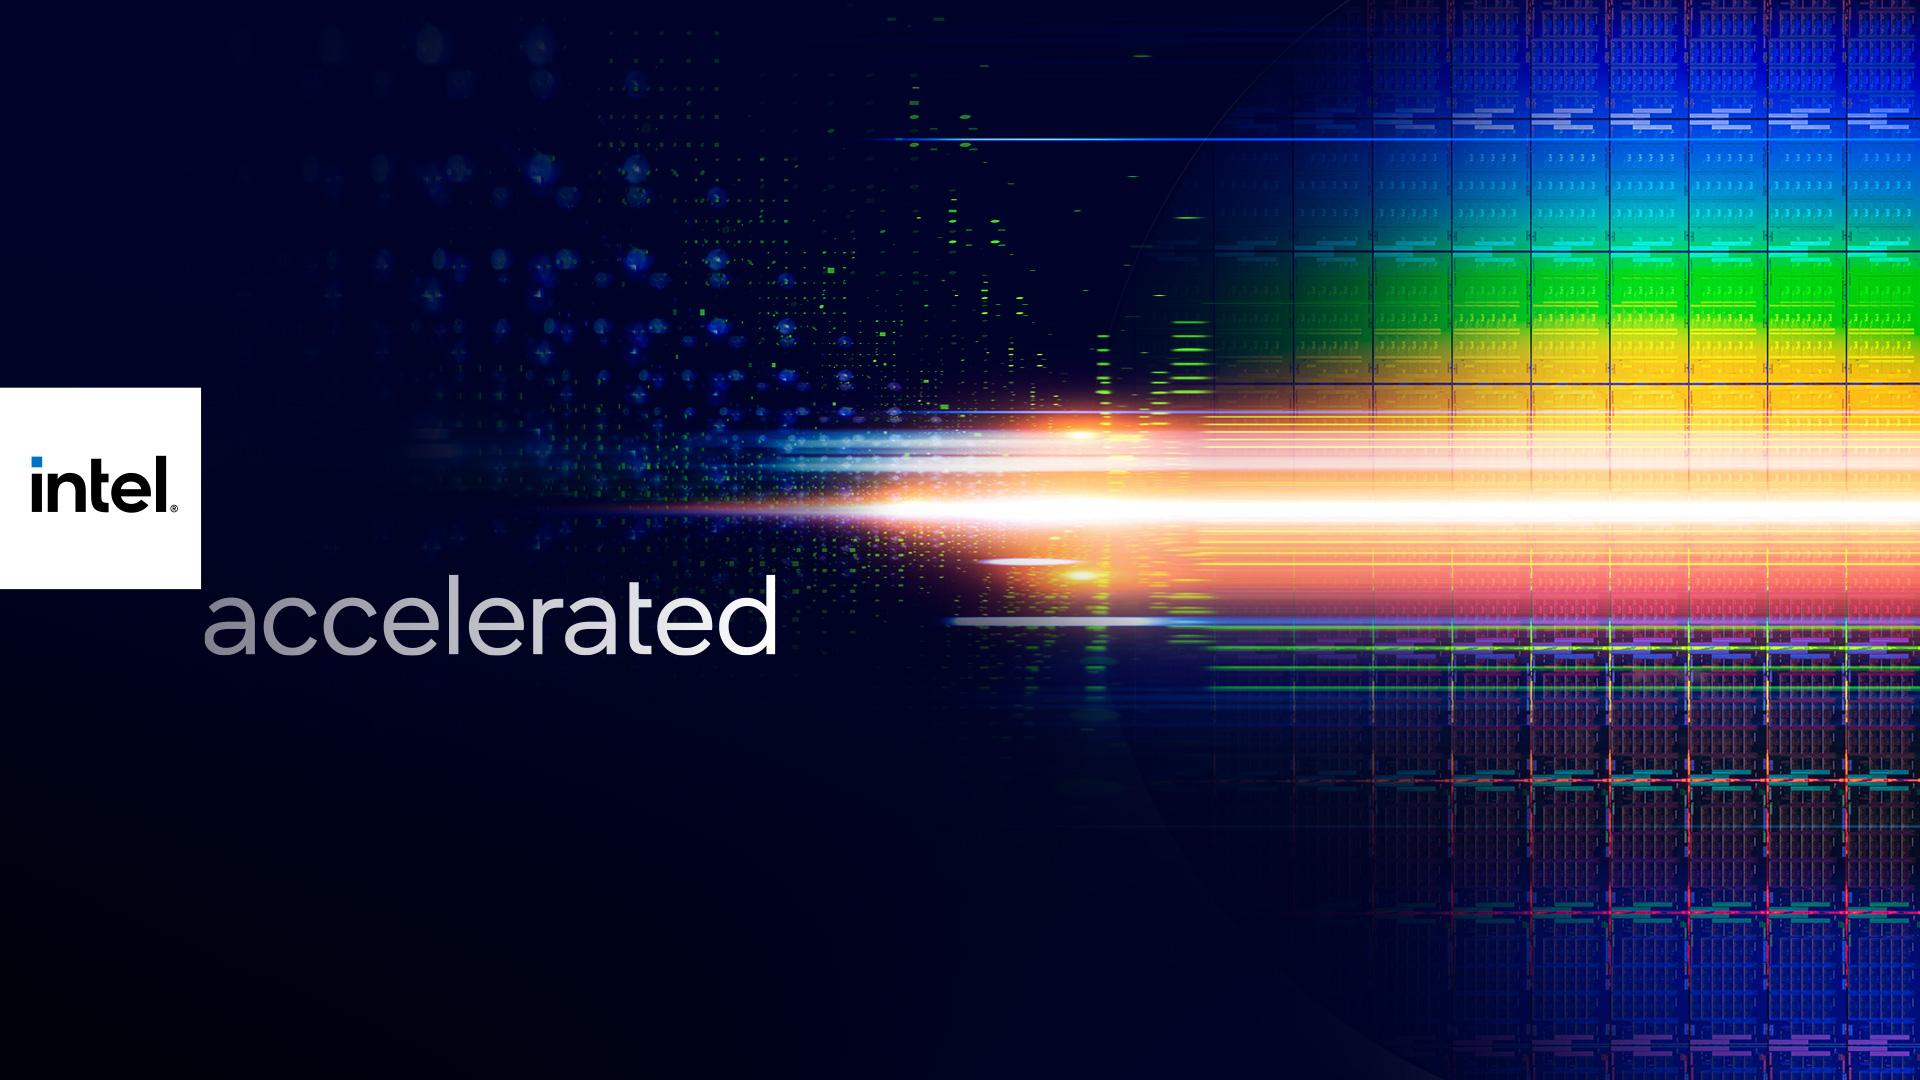 Intel Accelerated Event Hosted By CEO Pat Gelsinger To Detail IDM 2.0 And Process Roadmap